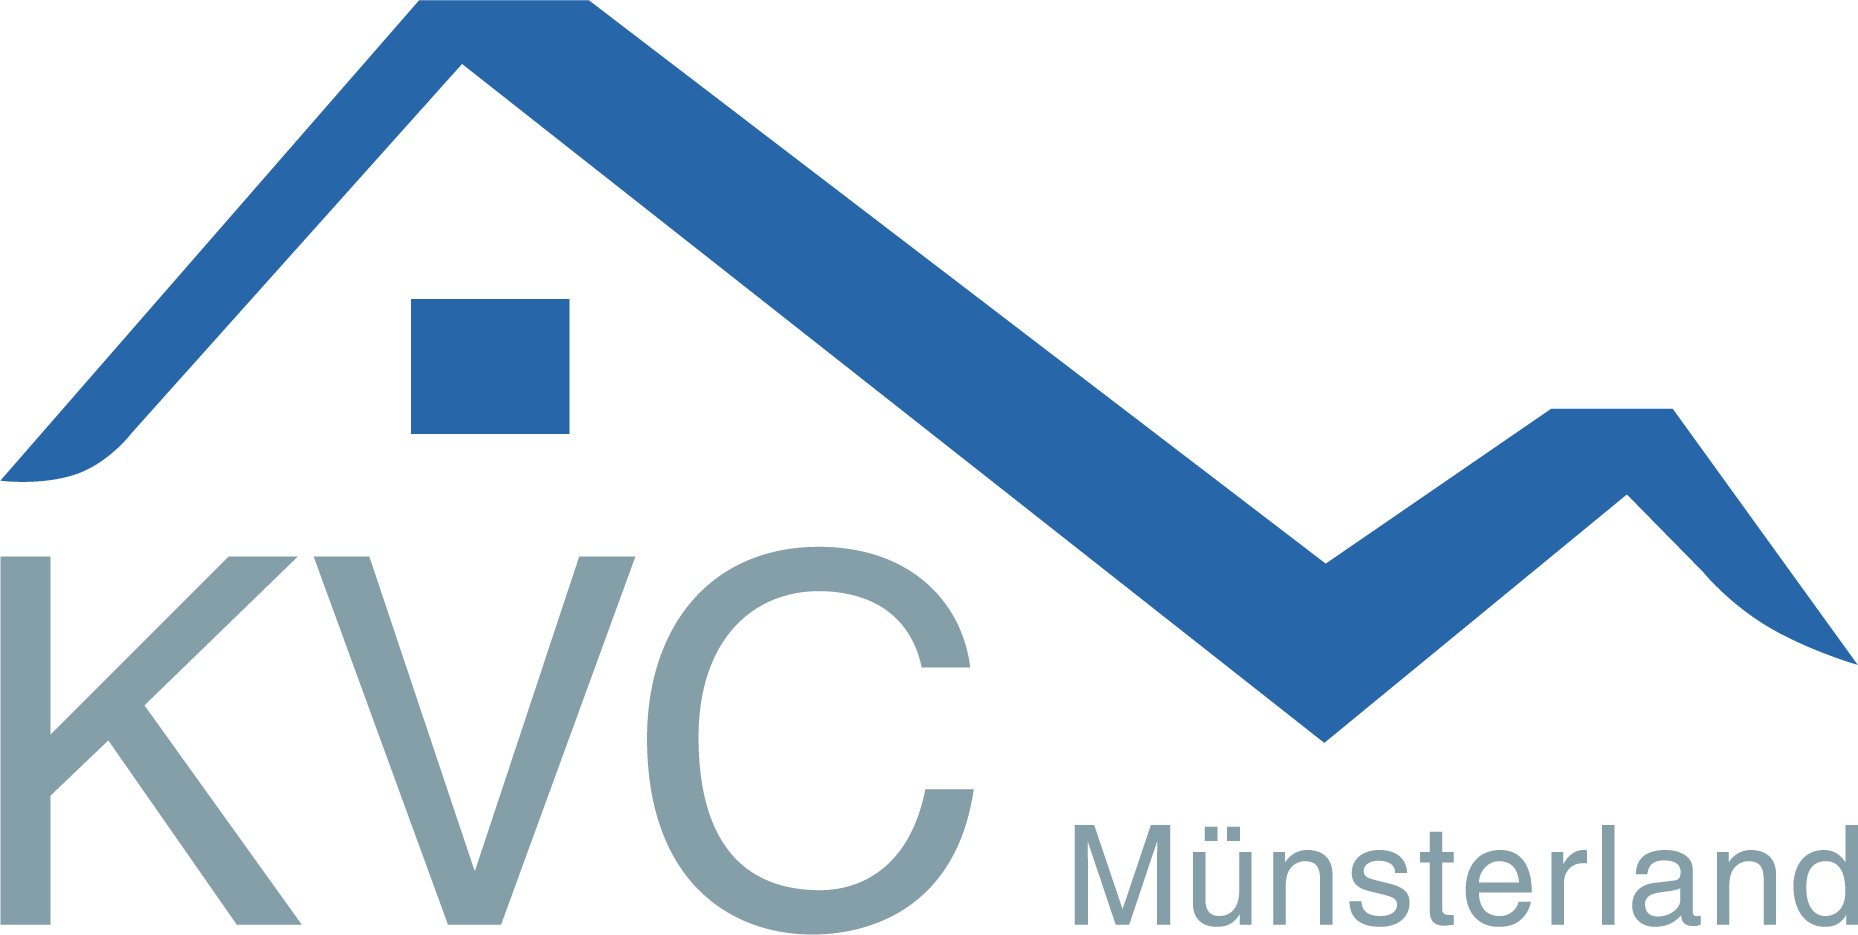 KVC - Kredit-Vermittlungs-Contor Muensterland